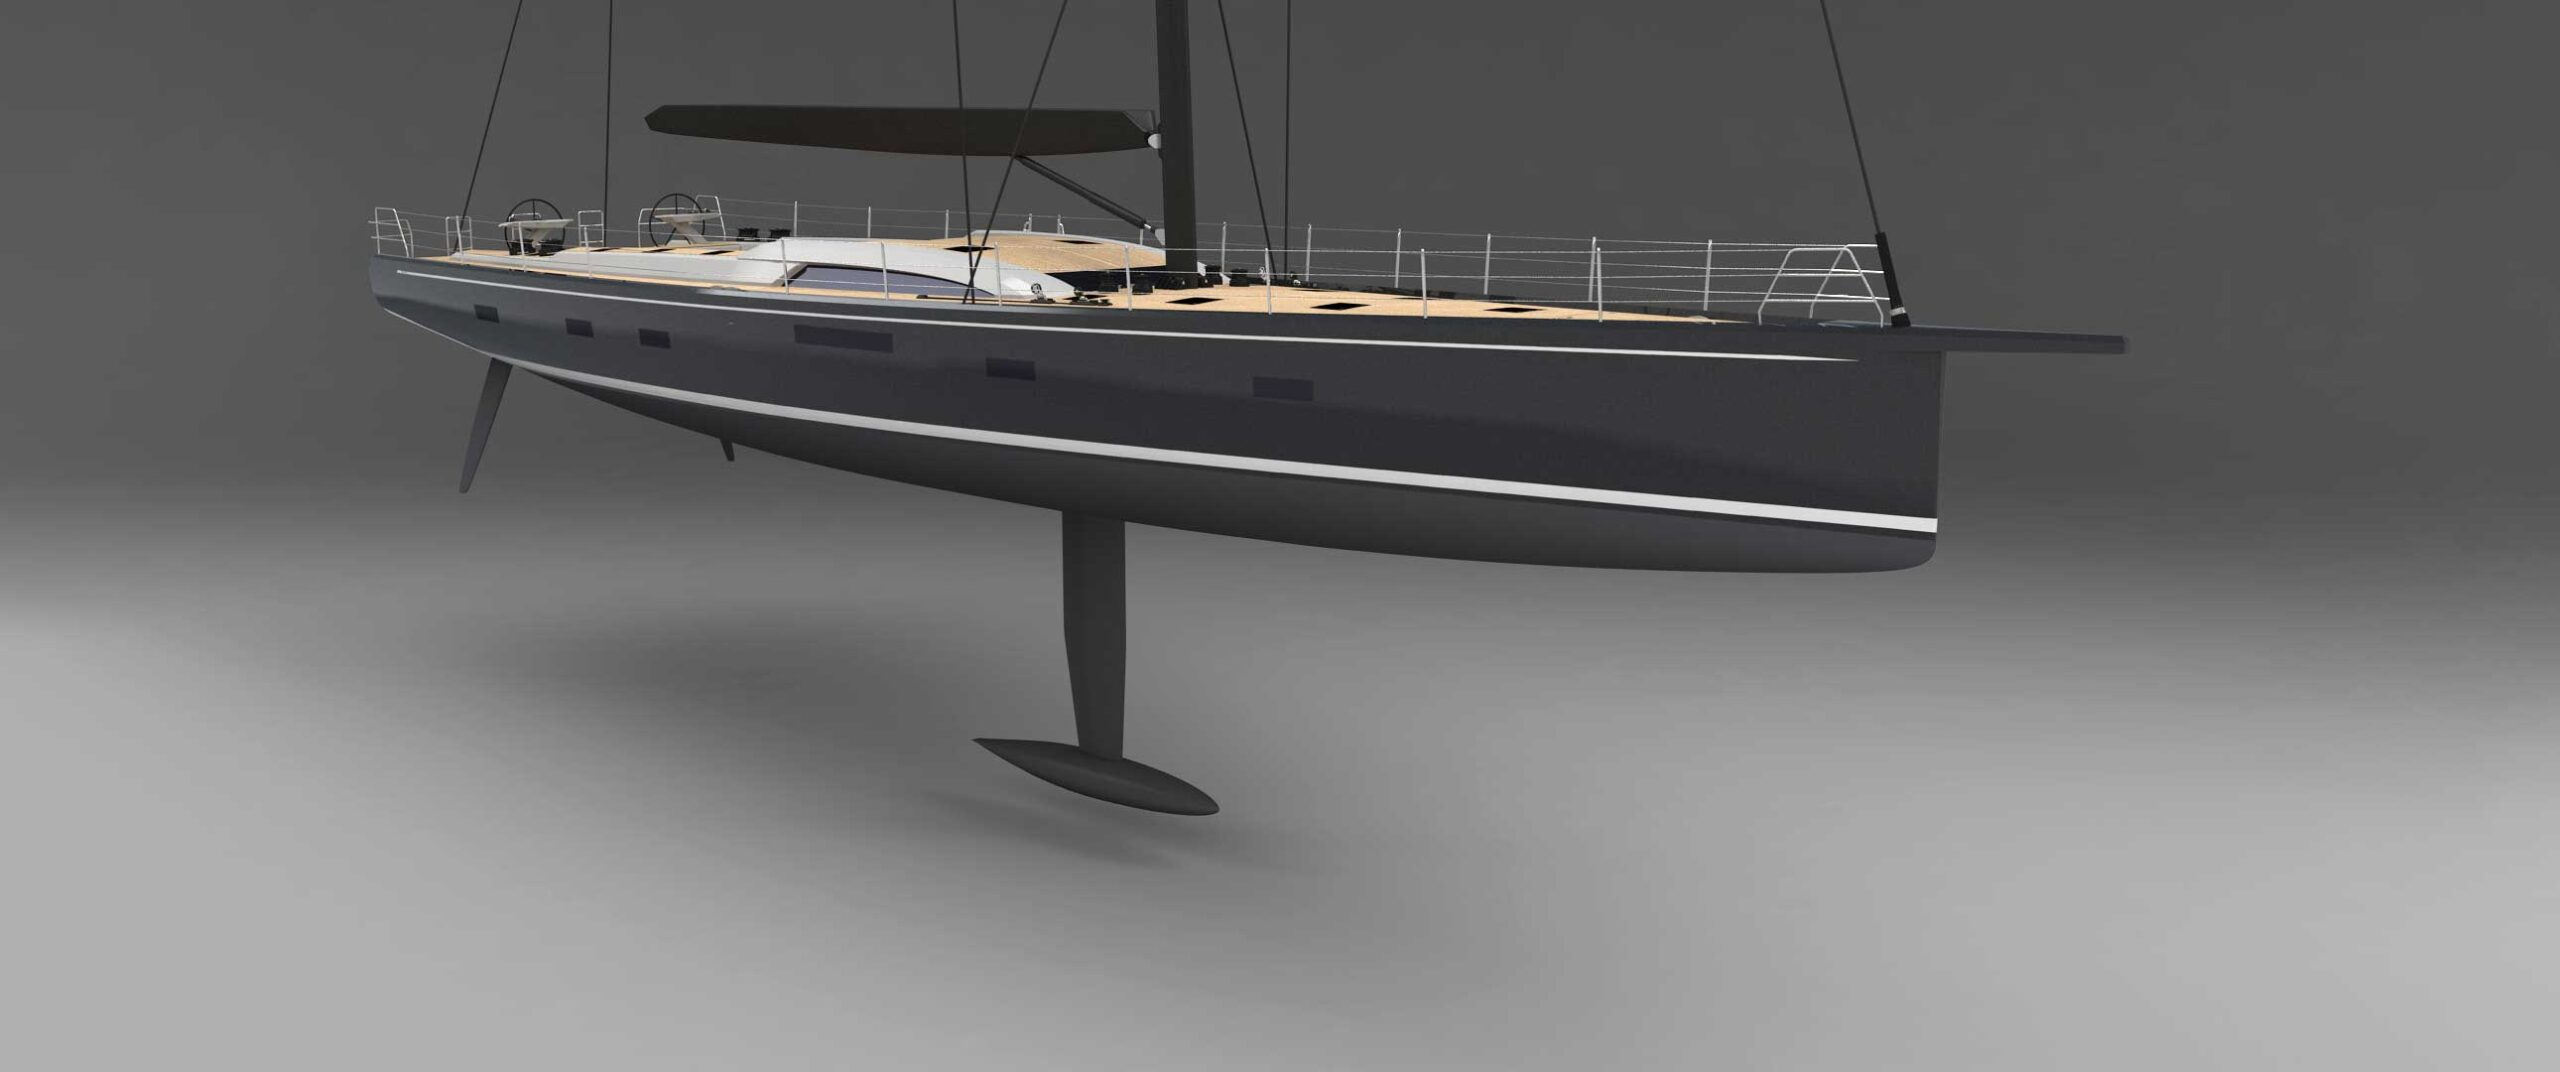 SW105-05-Southern-Wind-Yachts